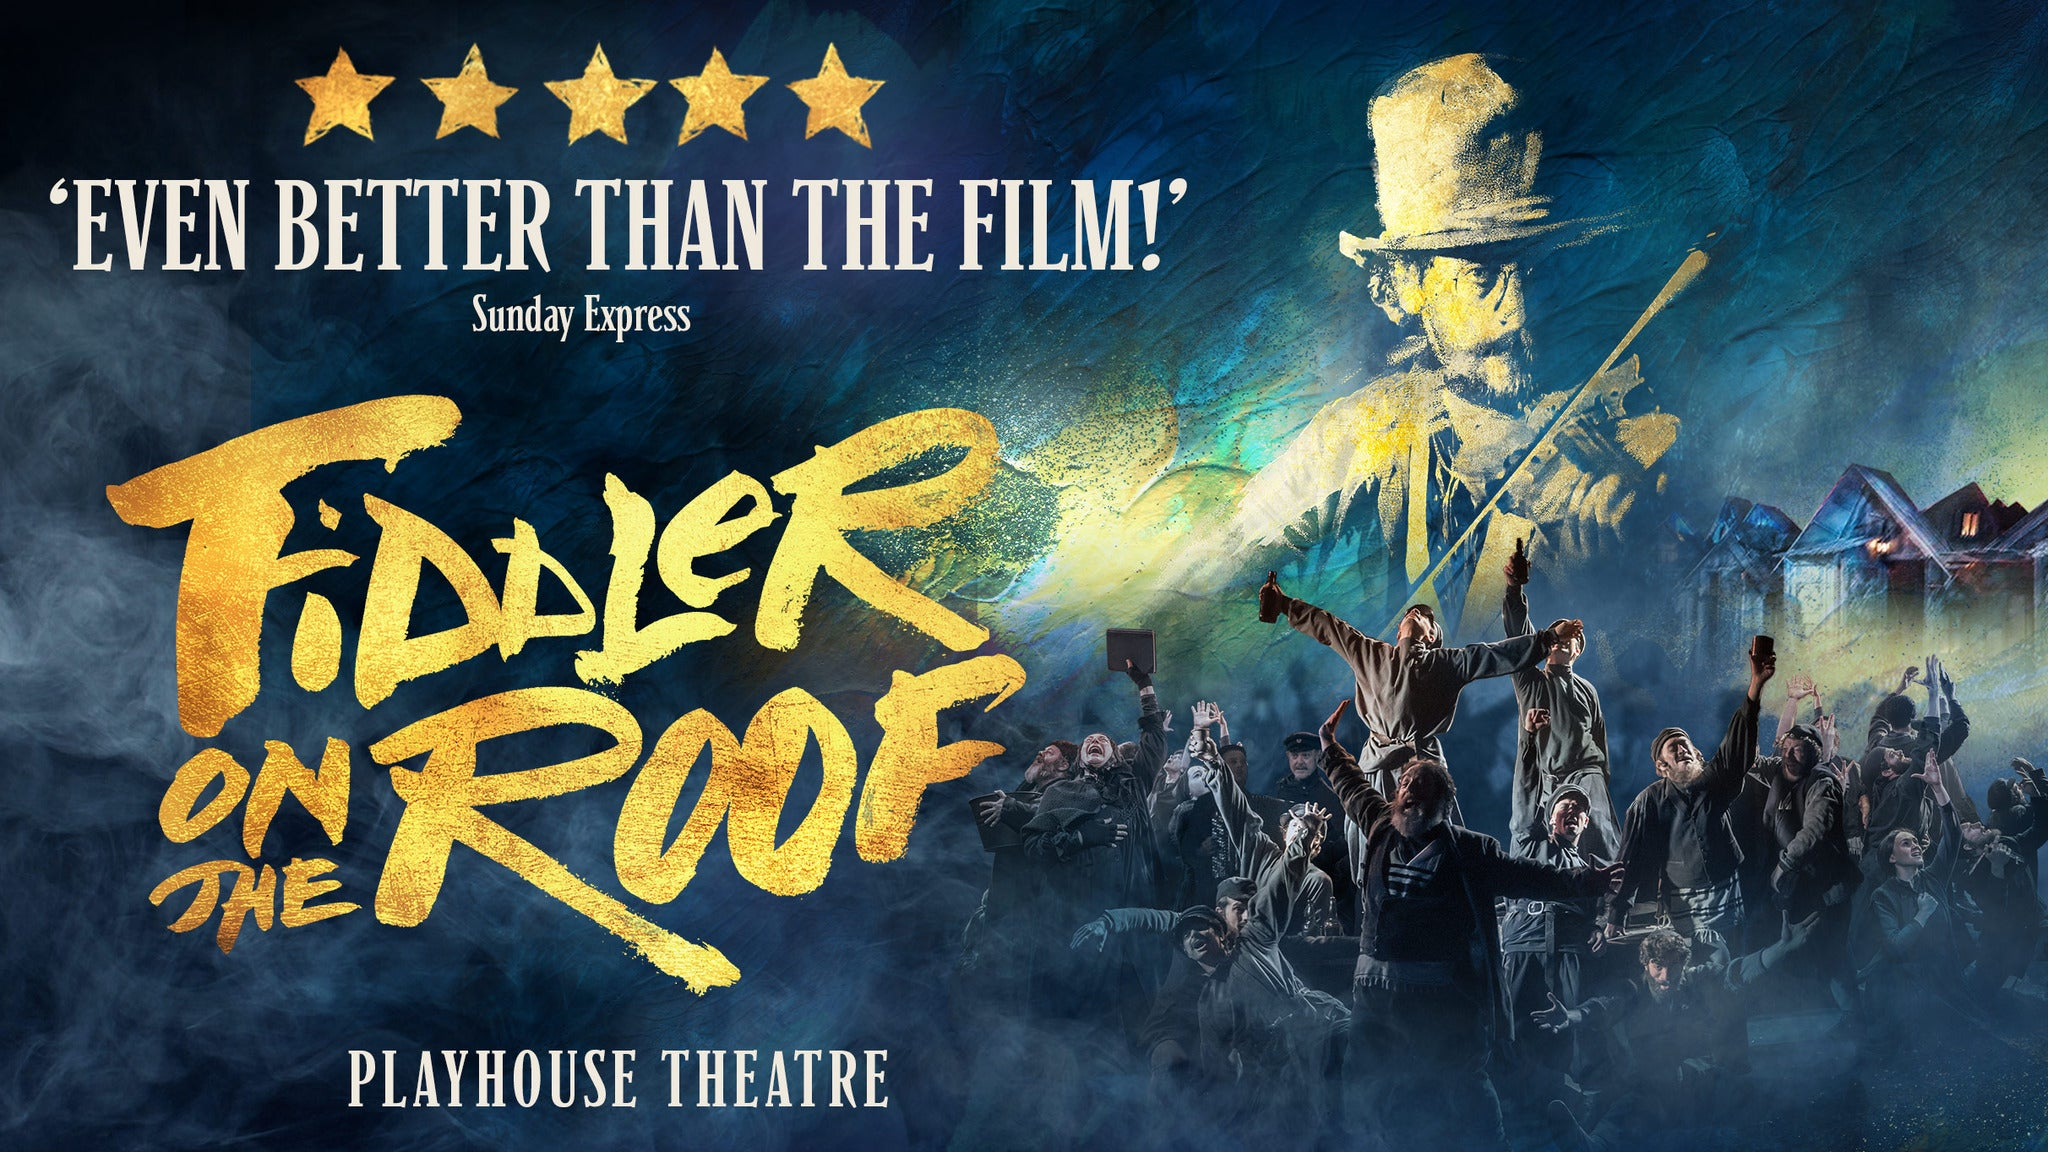 Fiddler On The Roof at State Theatre-NJ - New Brunswick, NJ 08901